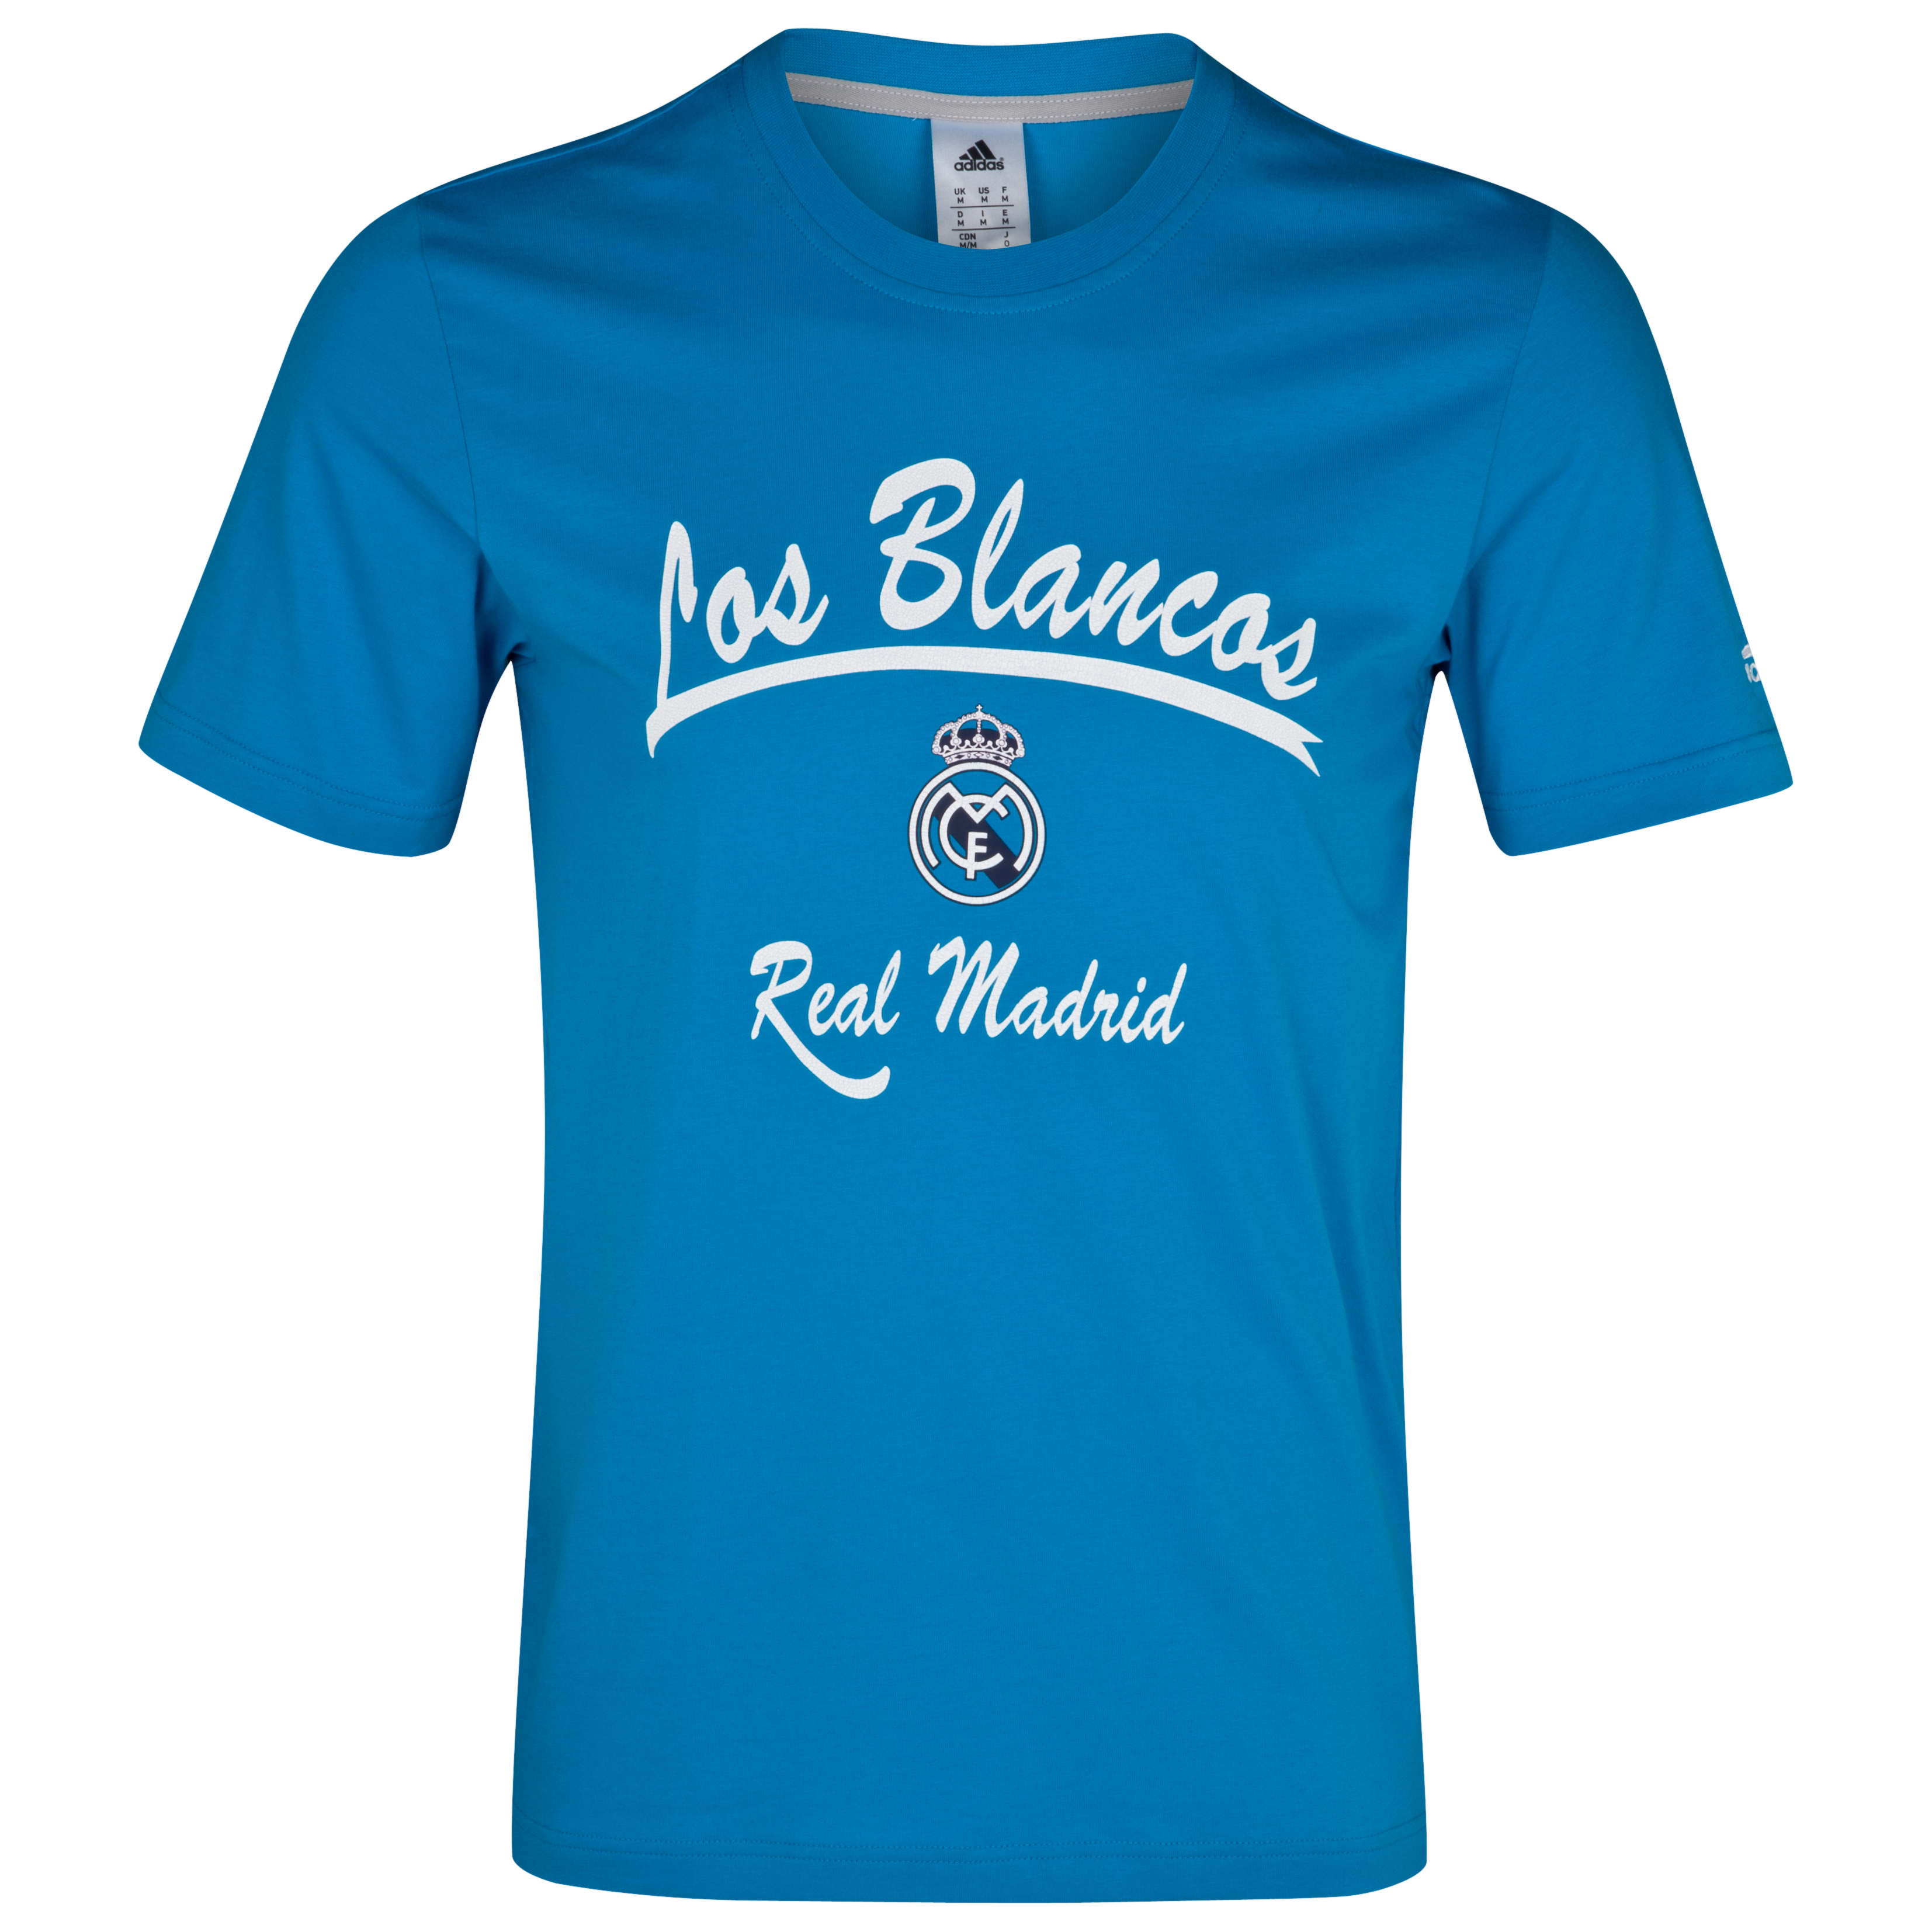 Camiseta gráfico Real Madrid - Turquesa/blanco